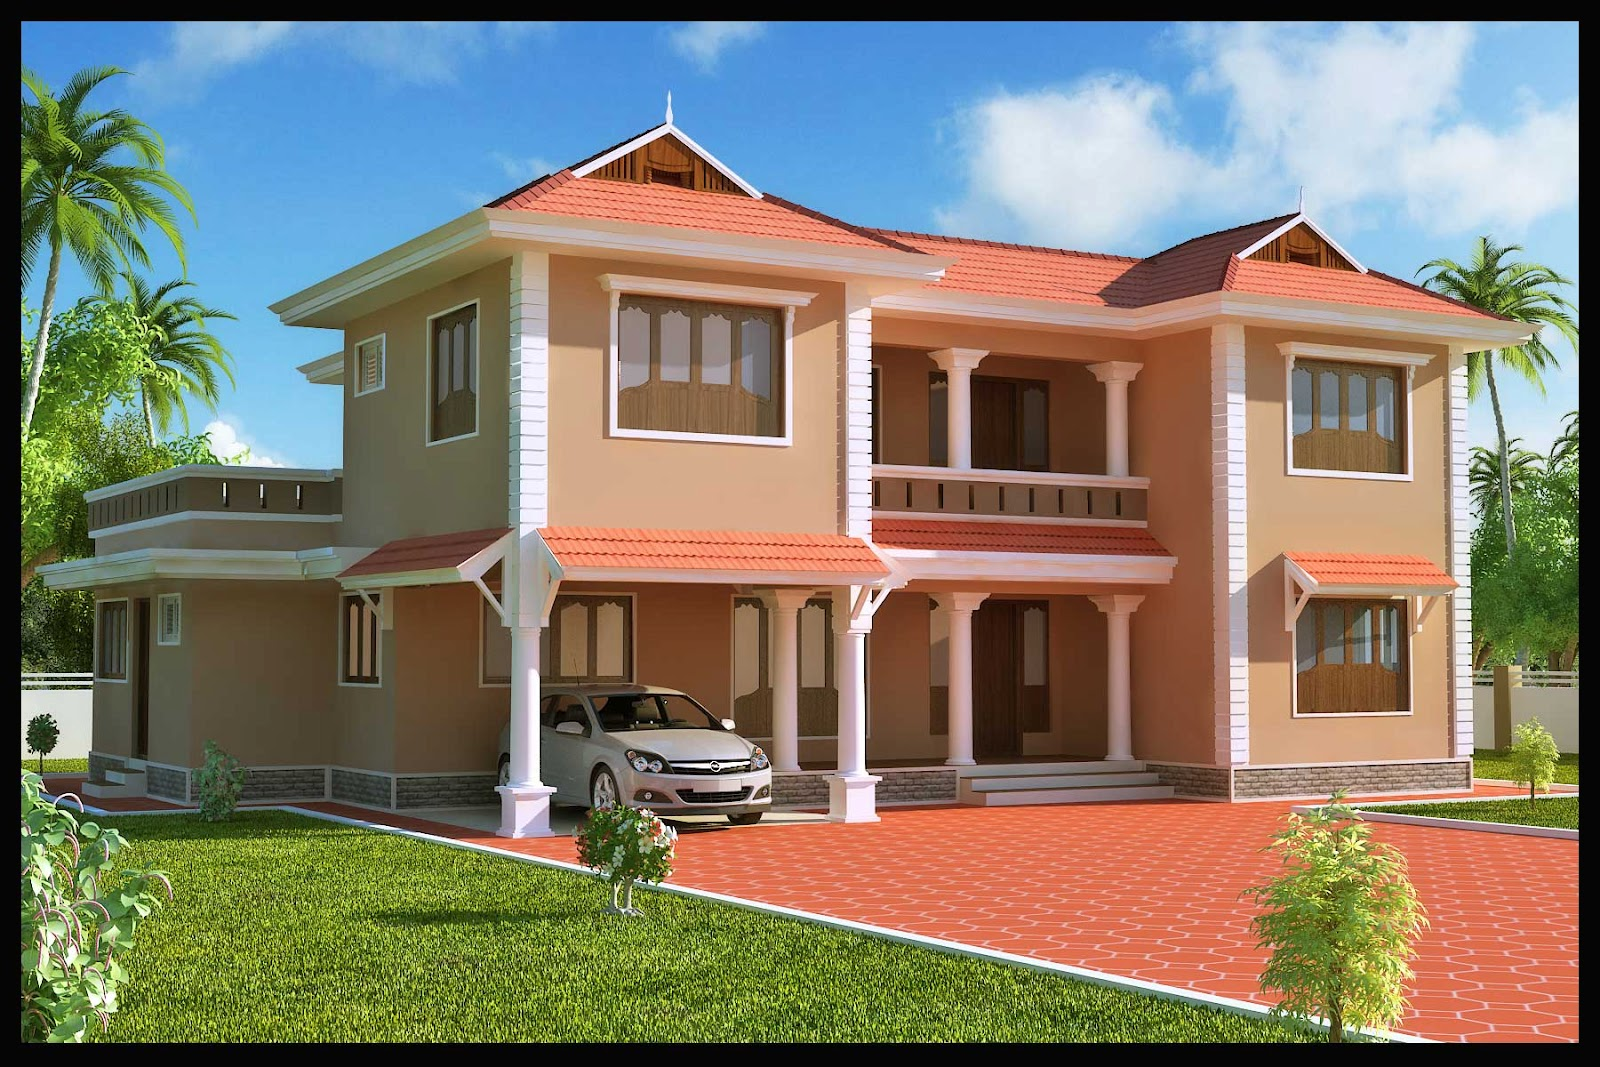 Kerala building construction 4 bhk villa Indian house front design photo